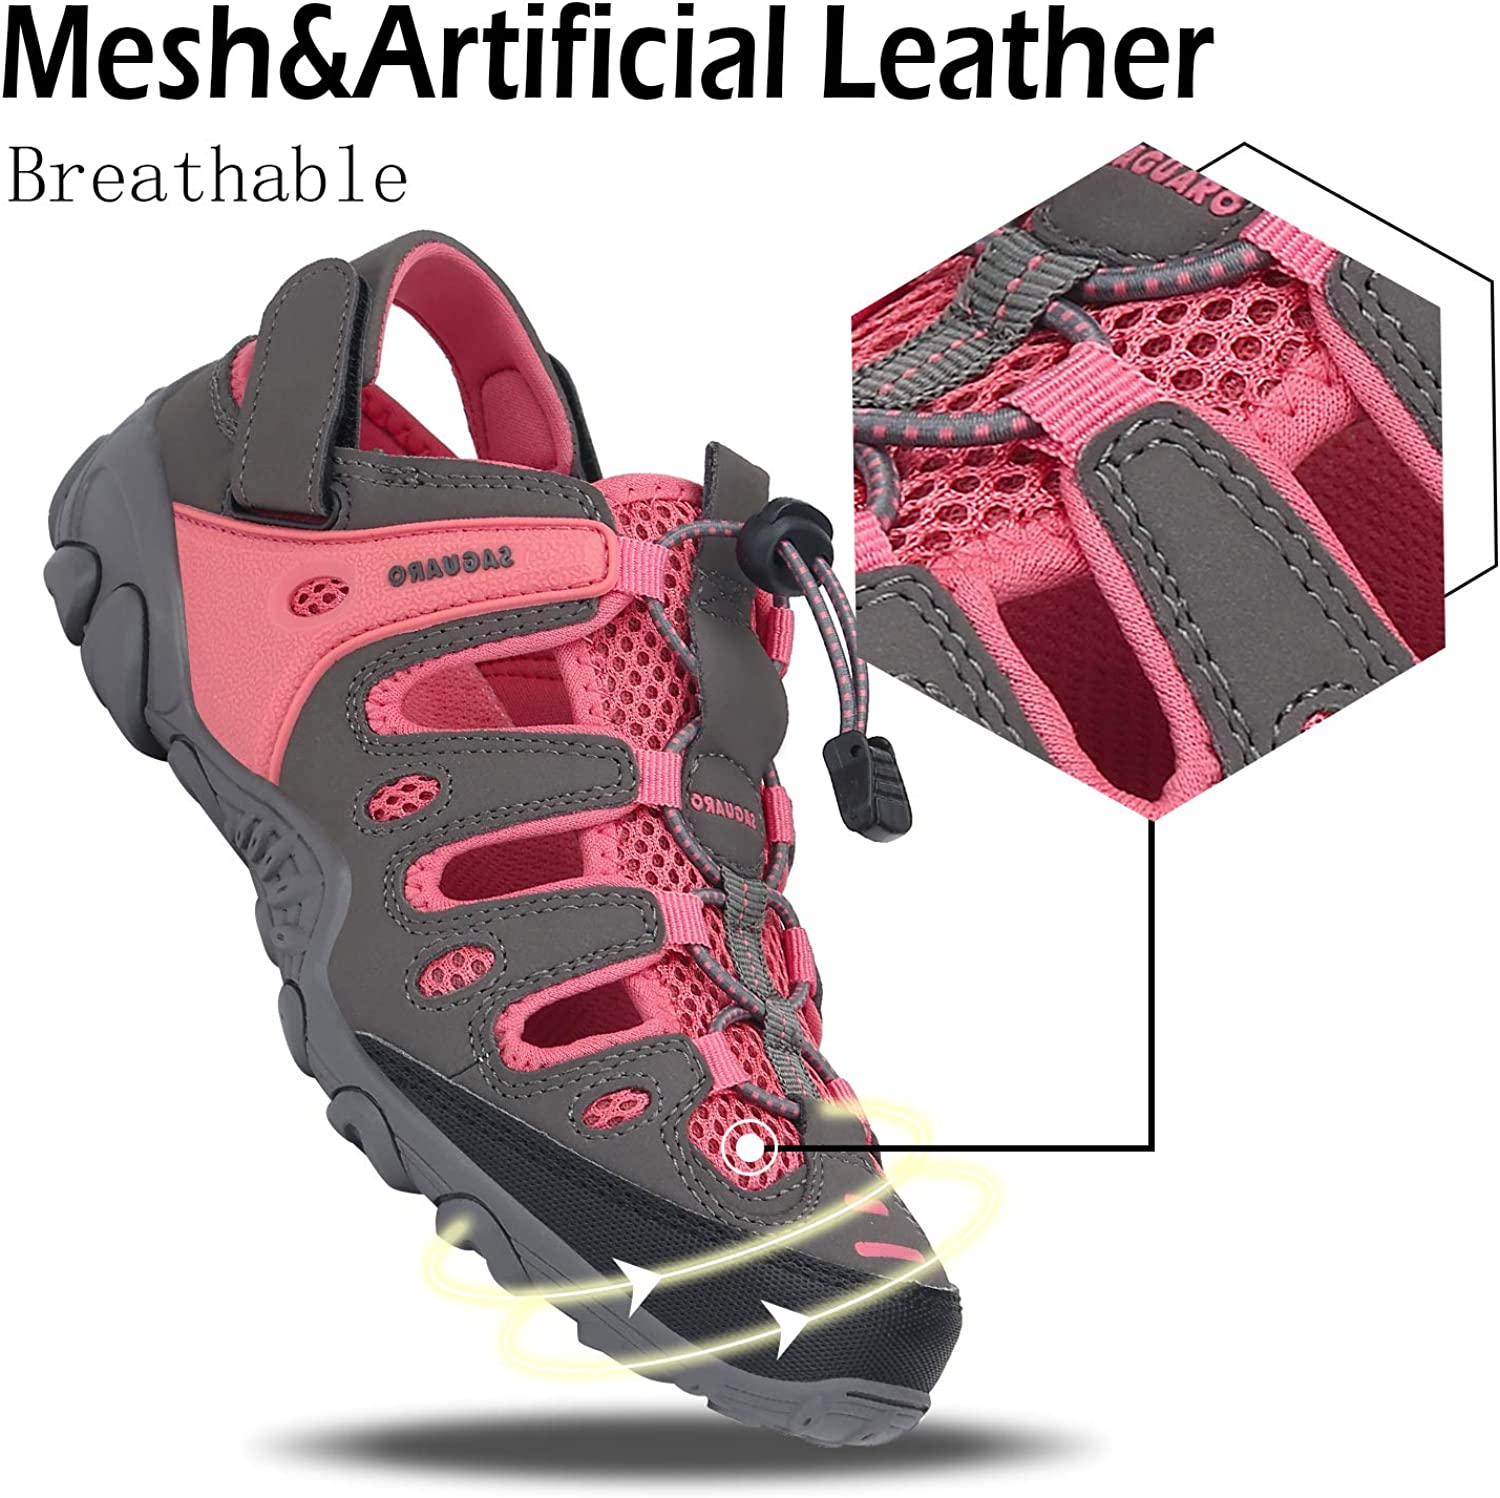 Womens Closed Toe Sandal Water Resistant Hiking Sandals Outdoor Sport Sandals Slip on Summer Water Shoes Beach River Fishing Pink 8.5 Women//6.5 Men